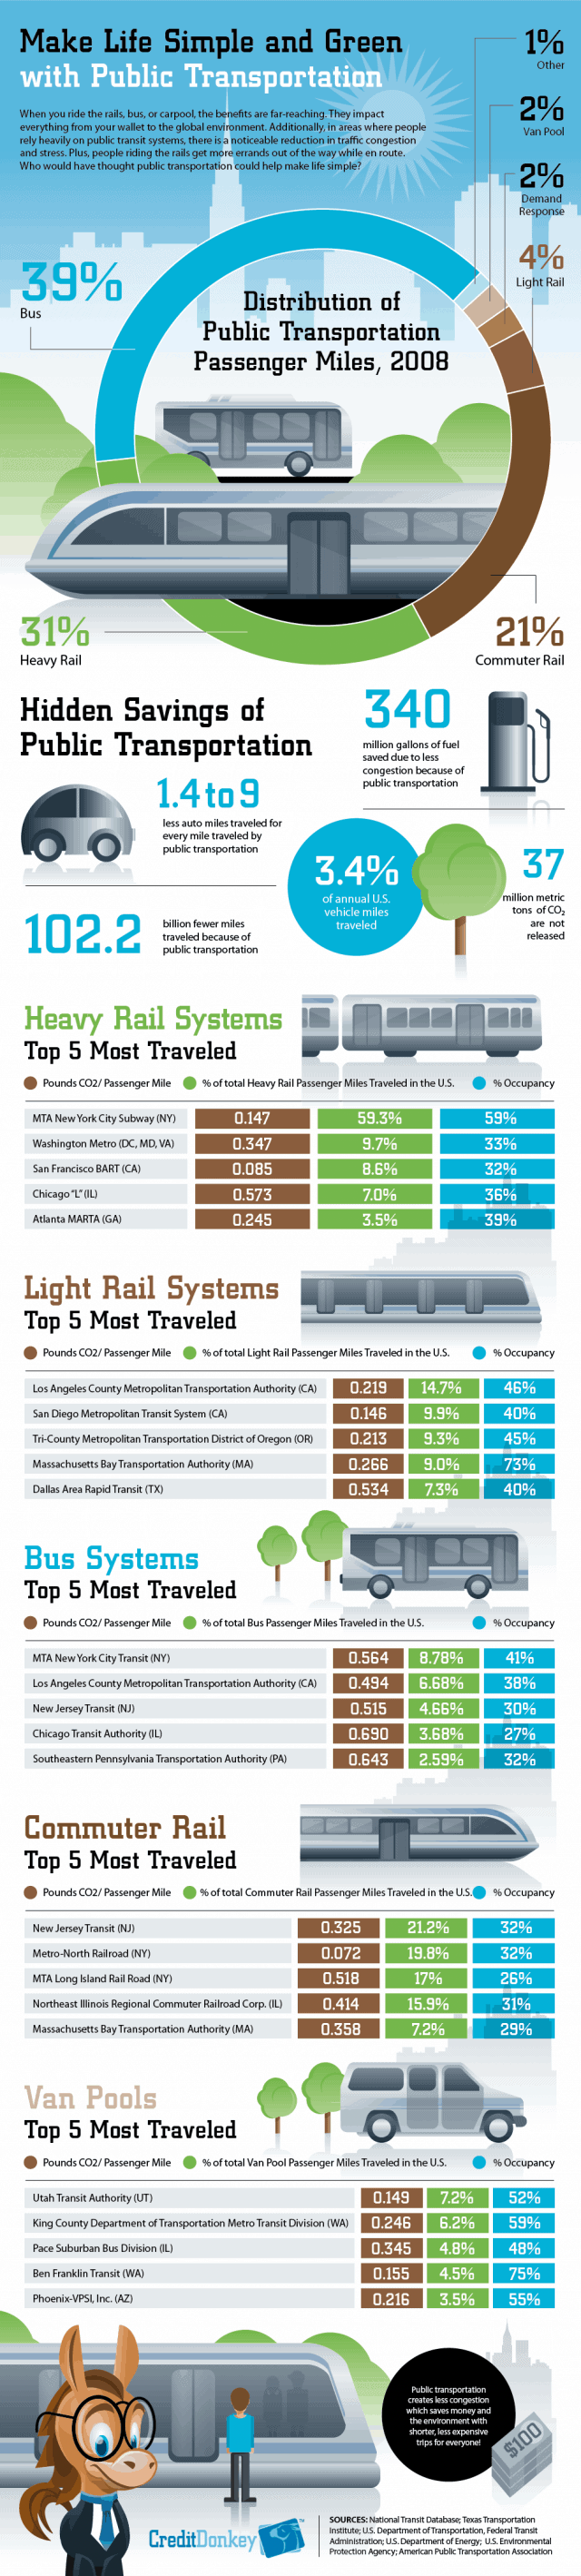 Public Transportation Savings